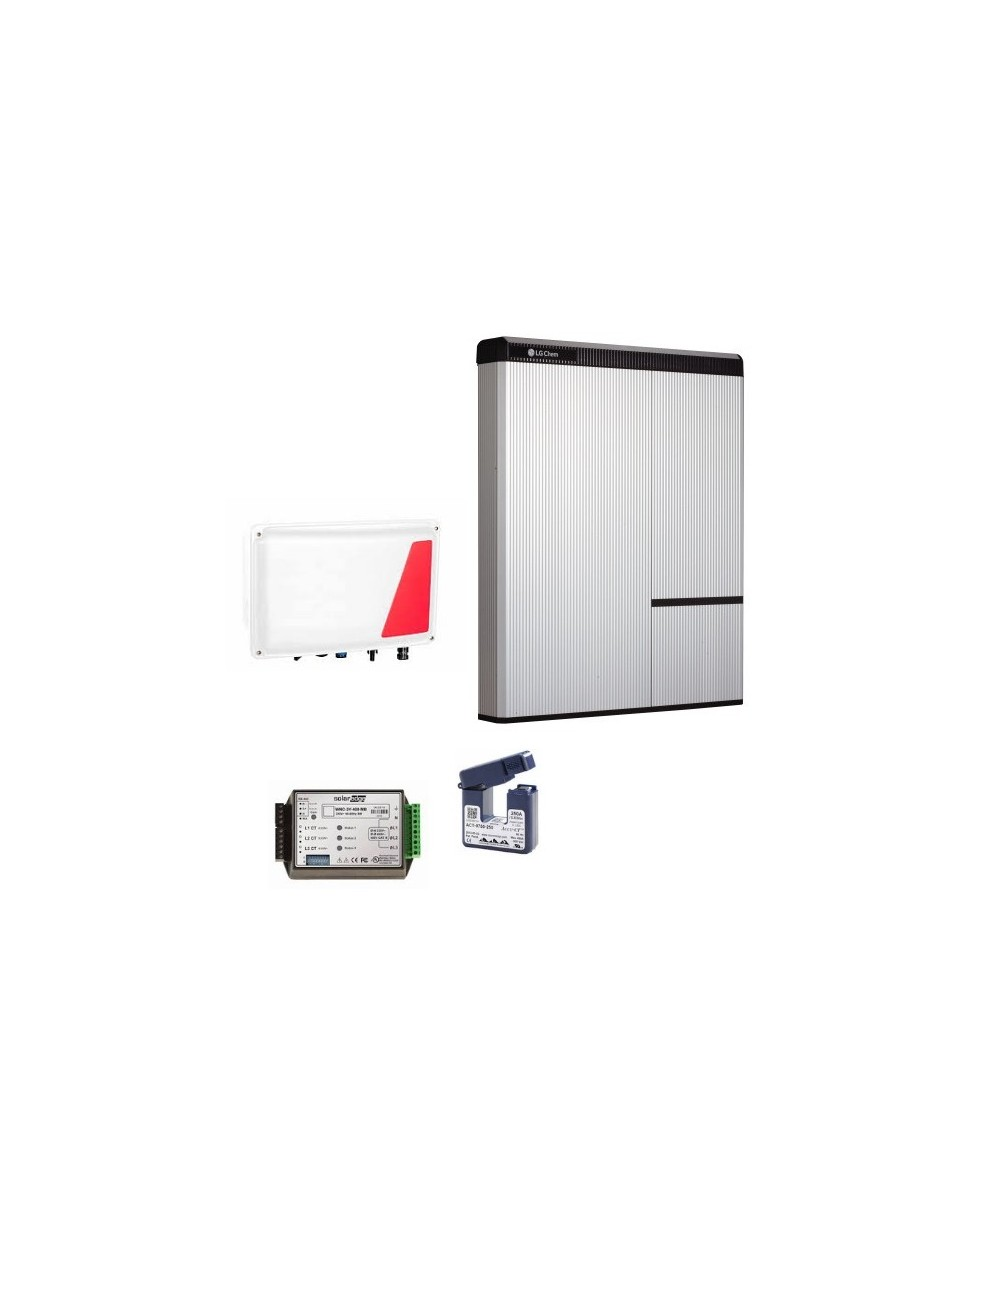 Kit Accumulo Fotovoltaico Retrofit LG Chem 9,8 kWh e Interfaccia Storedge SESTI-04